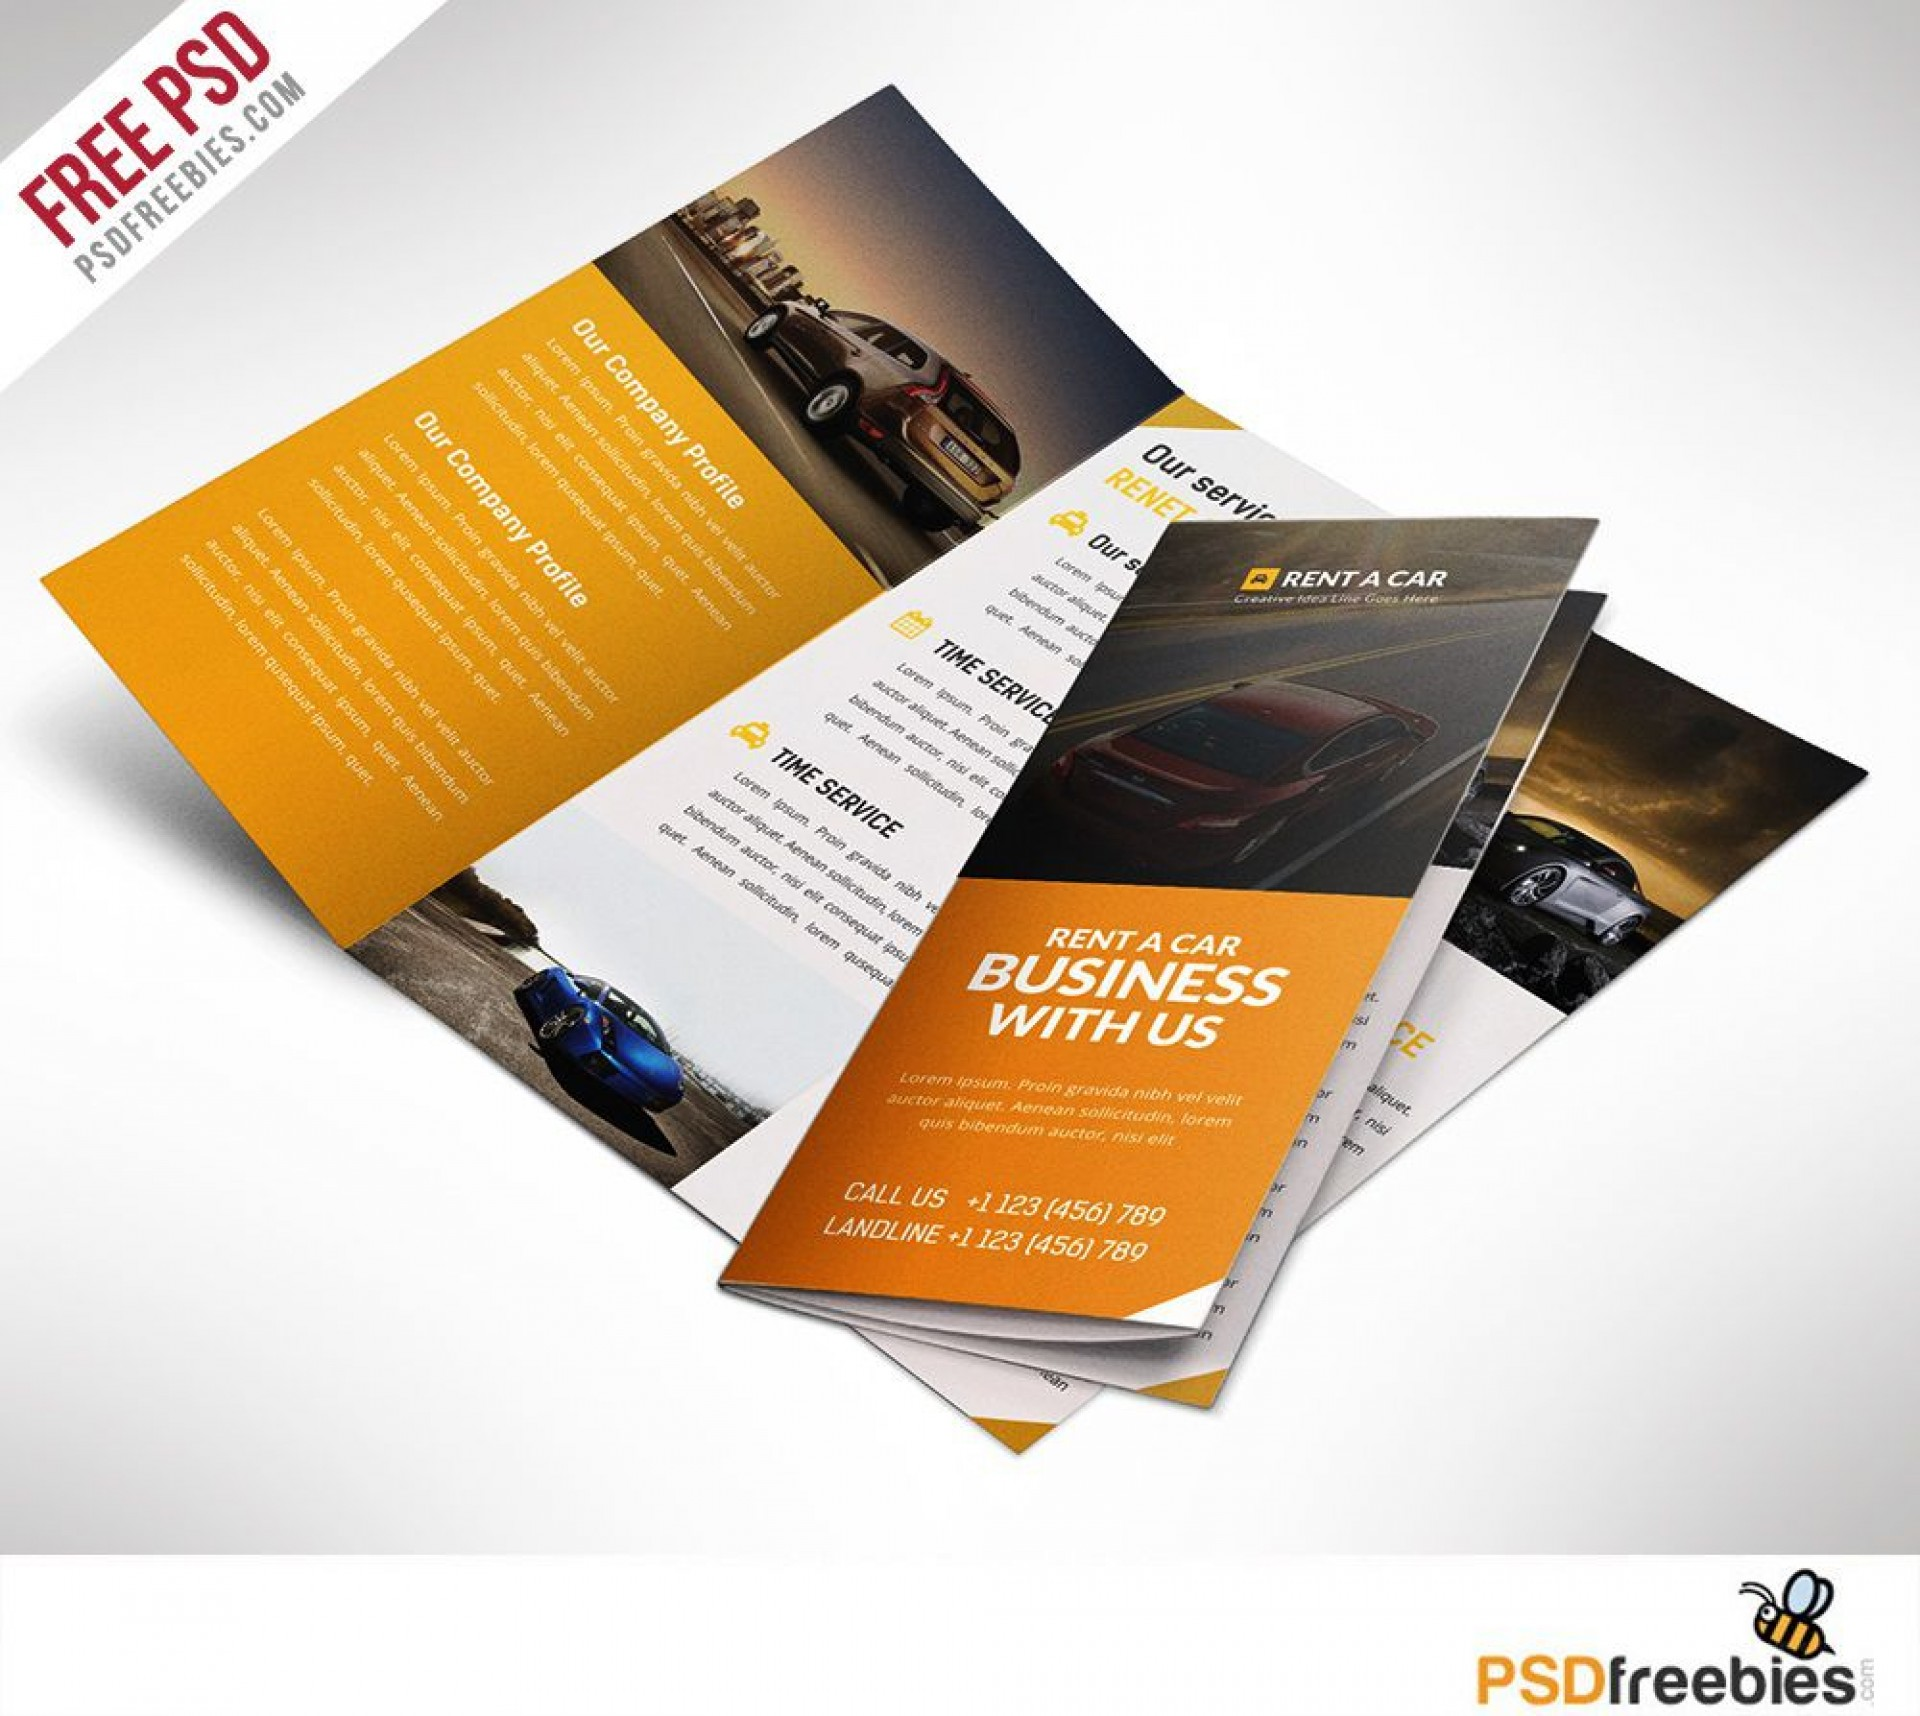 003 Formidable Tri Fold Template Free Image  Brochure Download Psd Microsoft Word1920